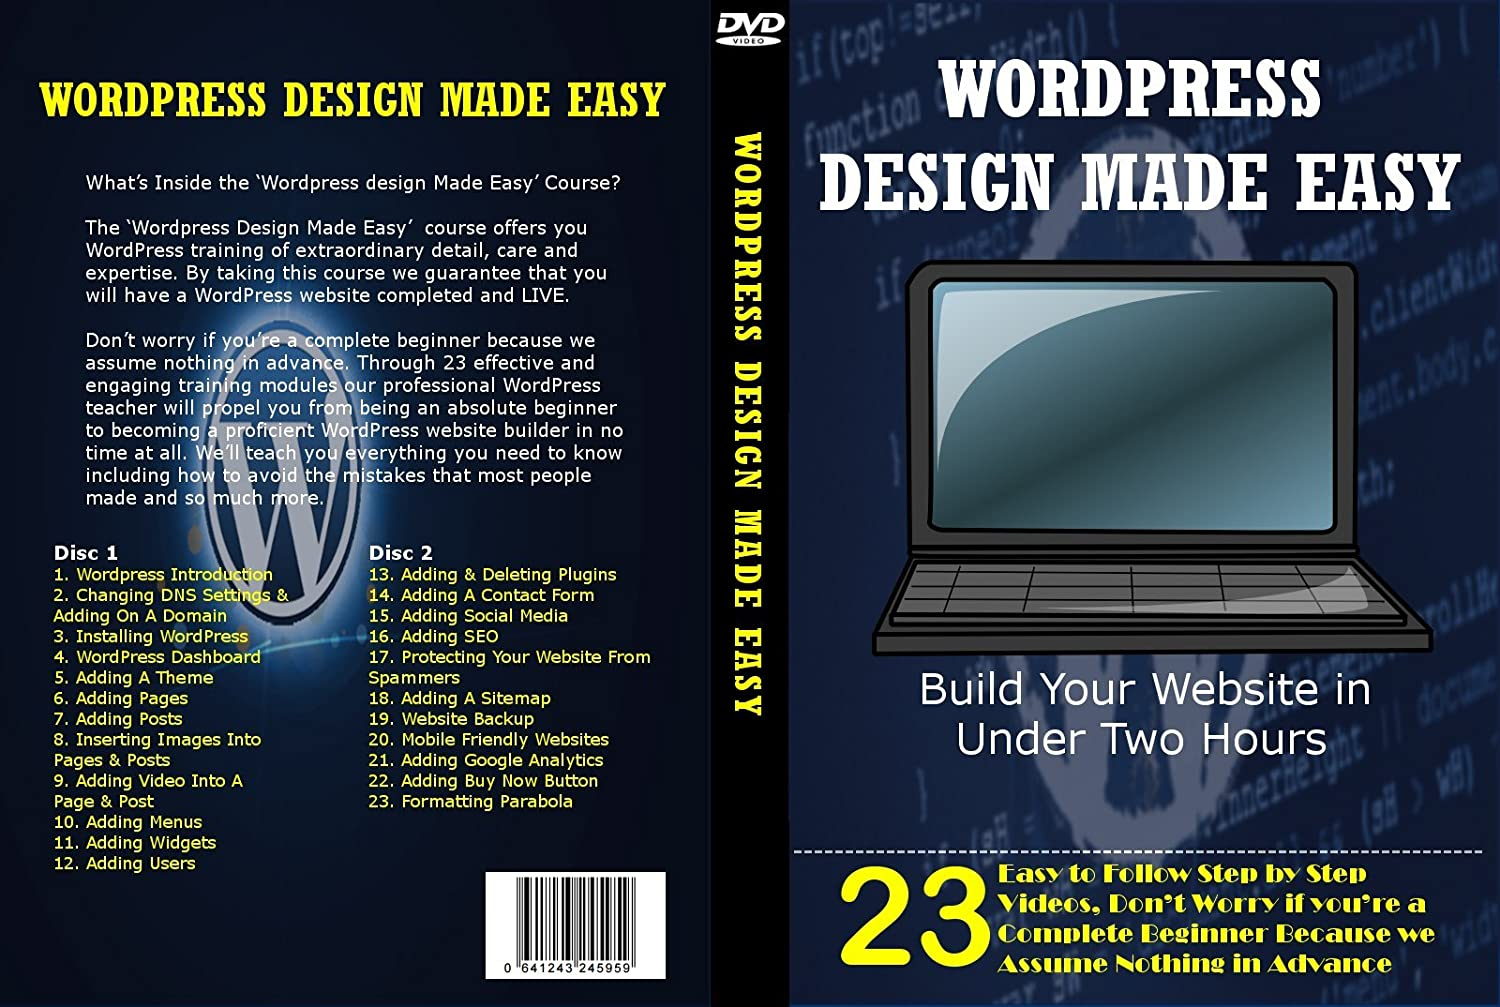 robelly ltd bring you wordpress design made easy build your website in under two hours 1 wordpress introduction 2 changing dns setting adding on a